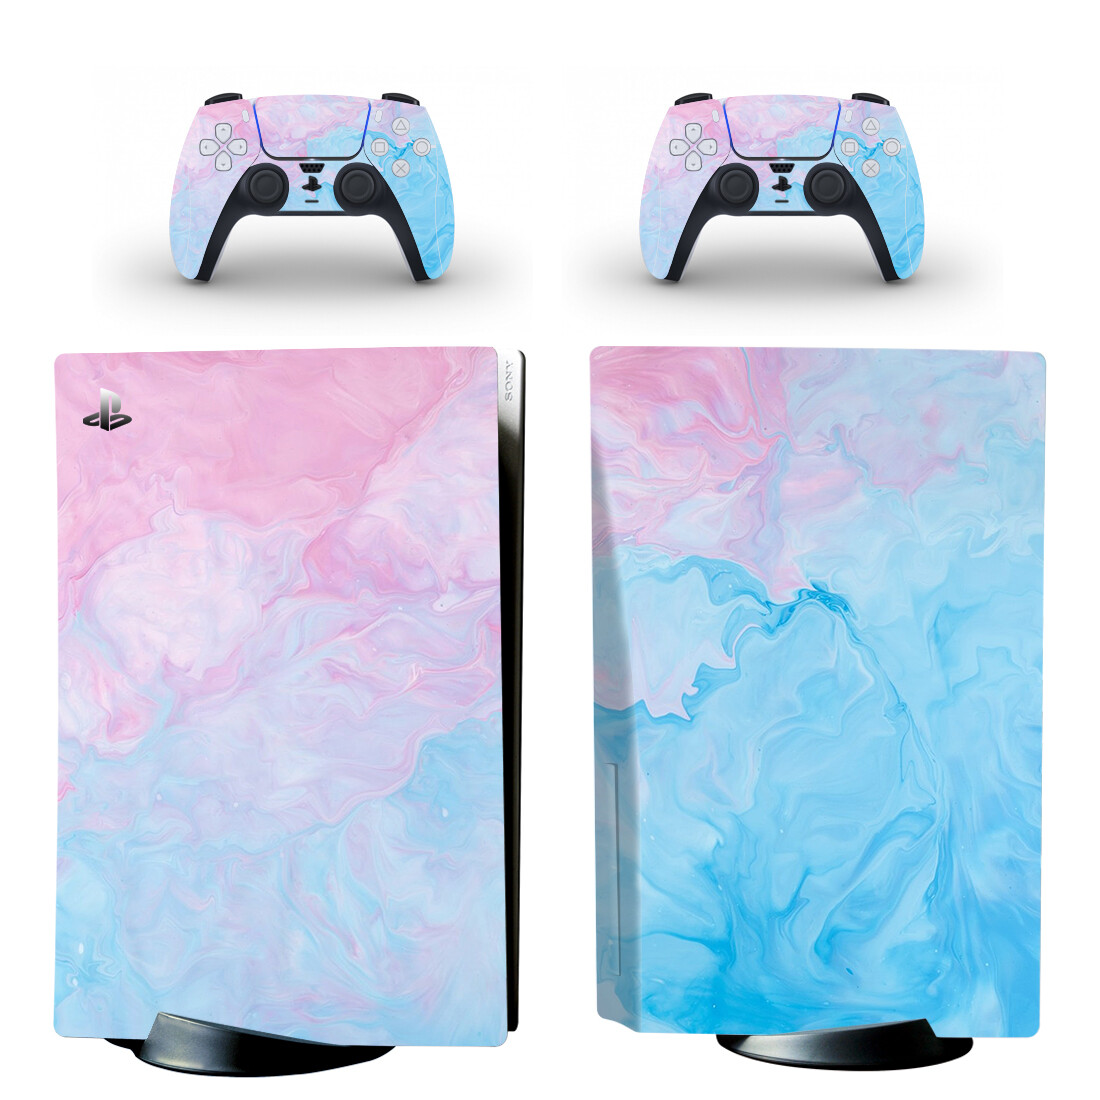 Soild Water Color Skin Sticker Decal For PlayStation 5